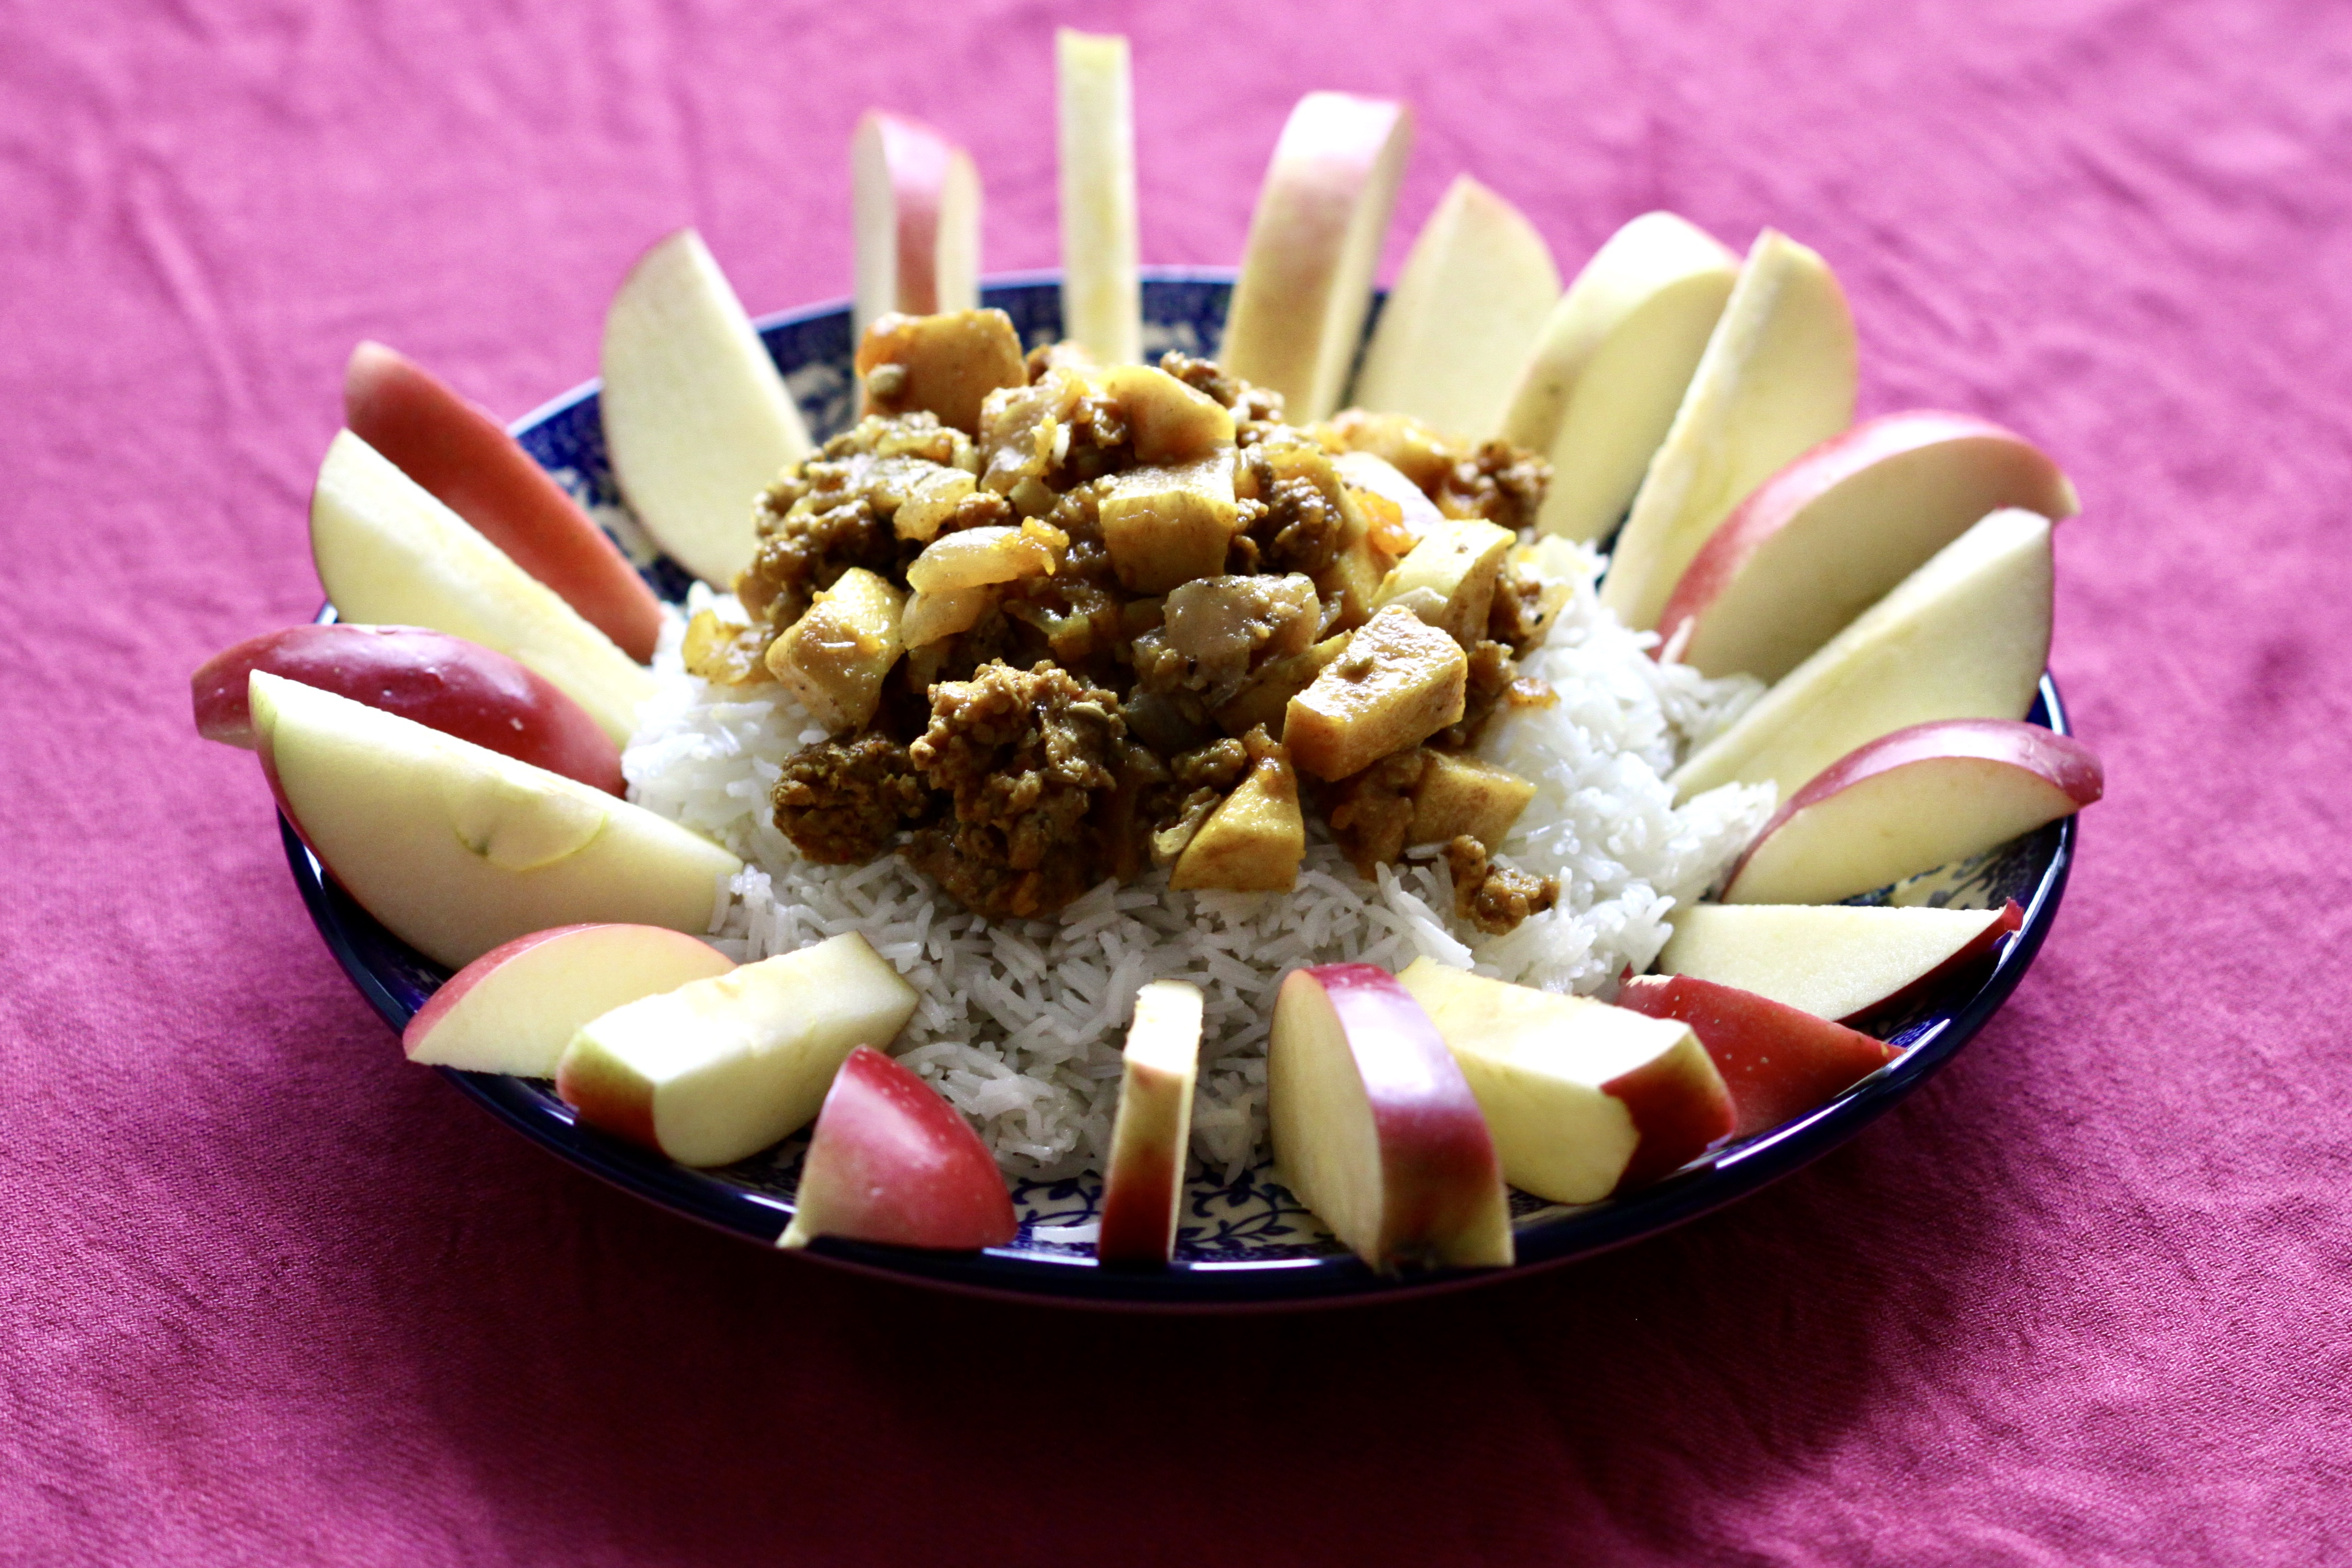 Apple stew and fresh apples